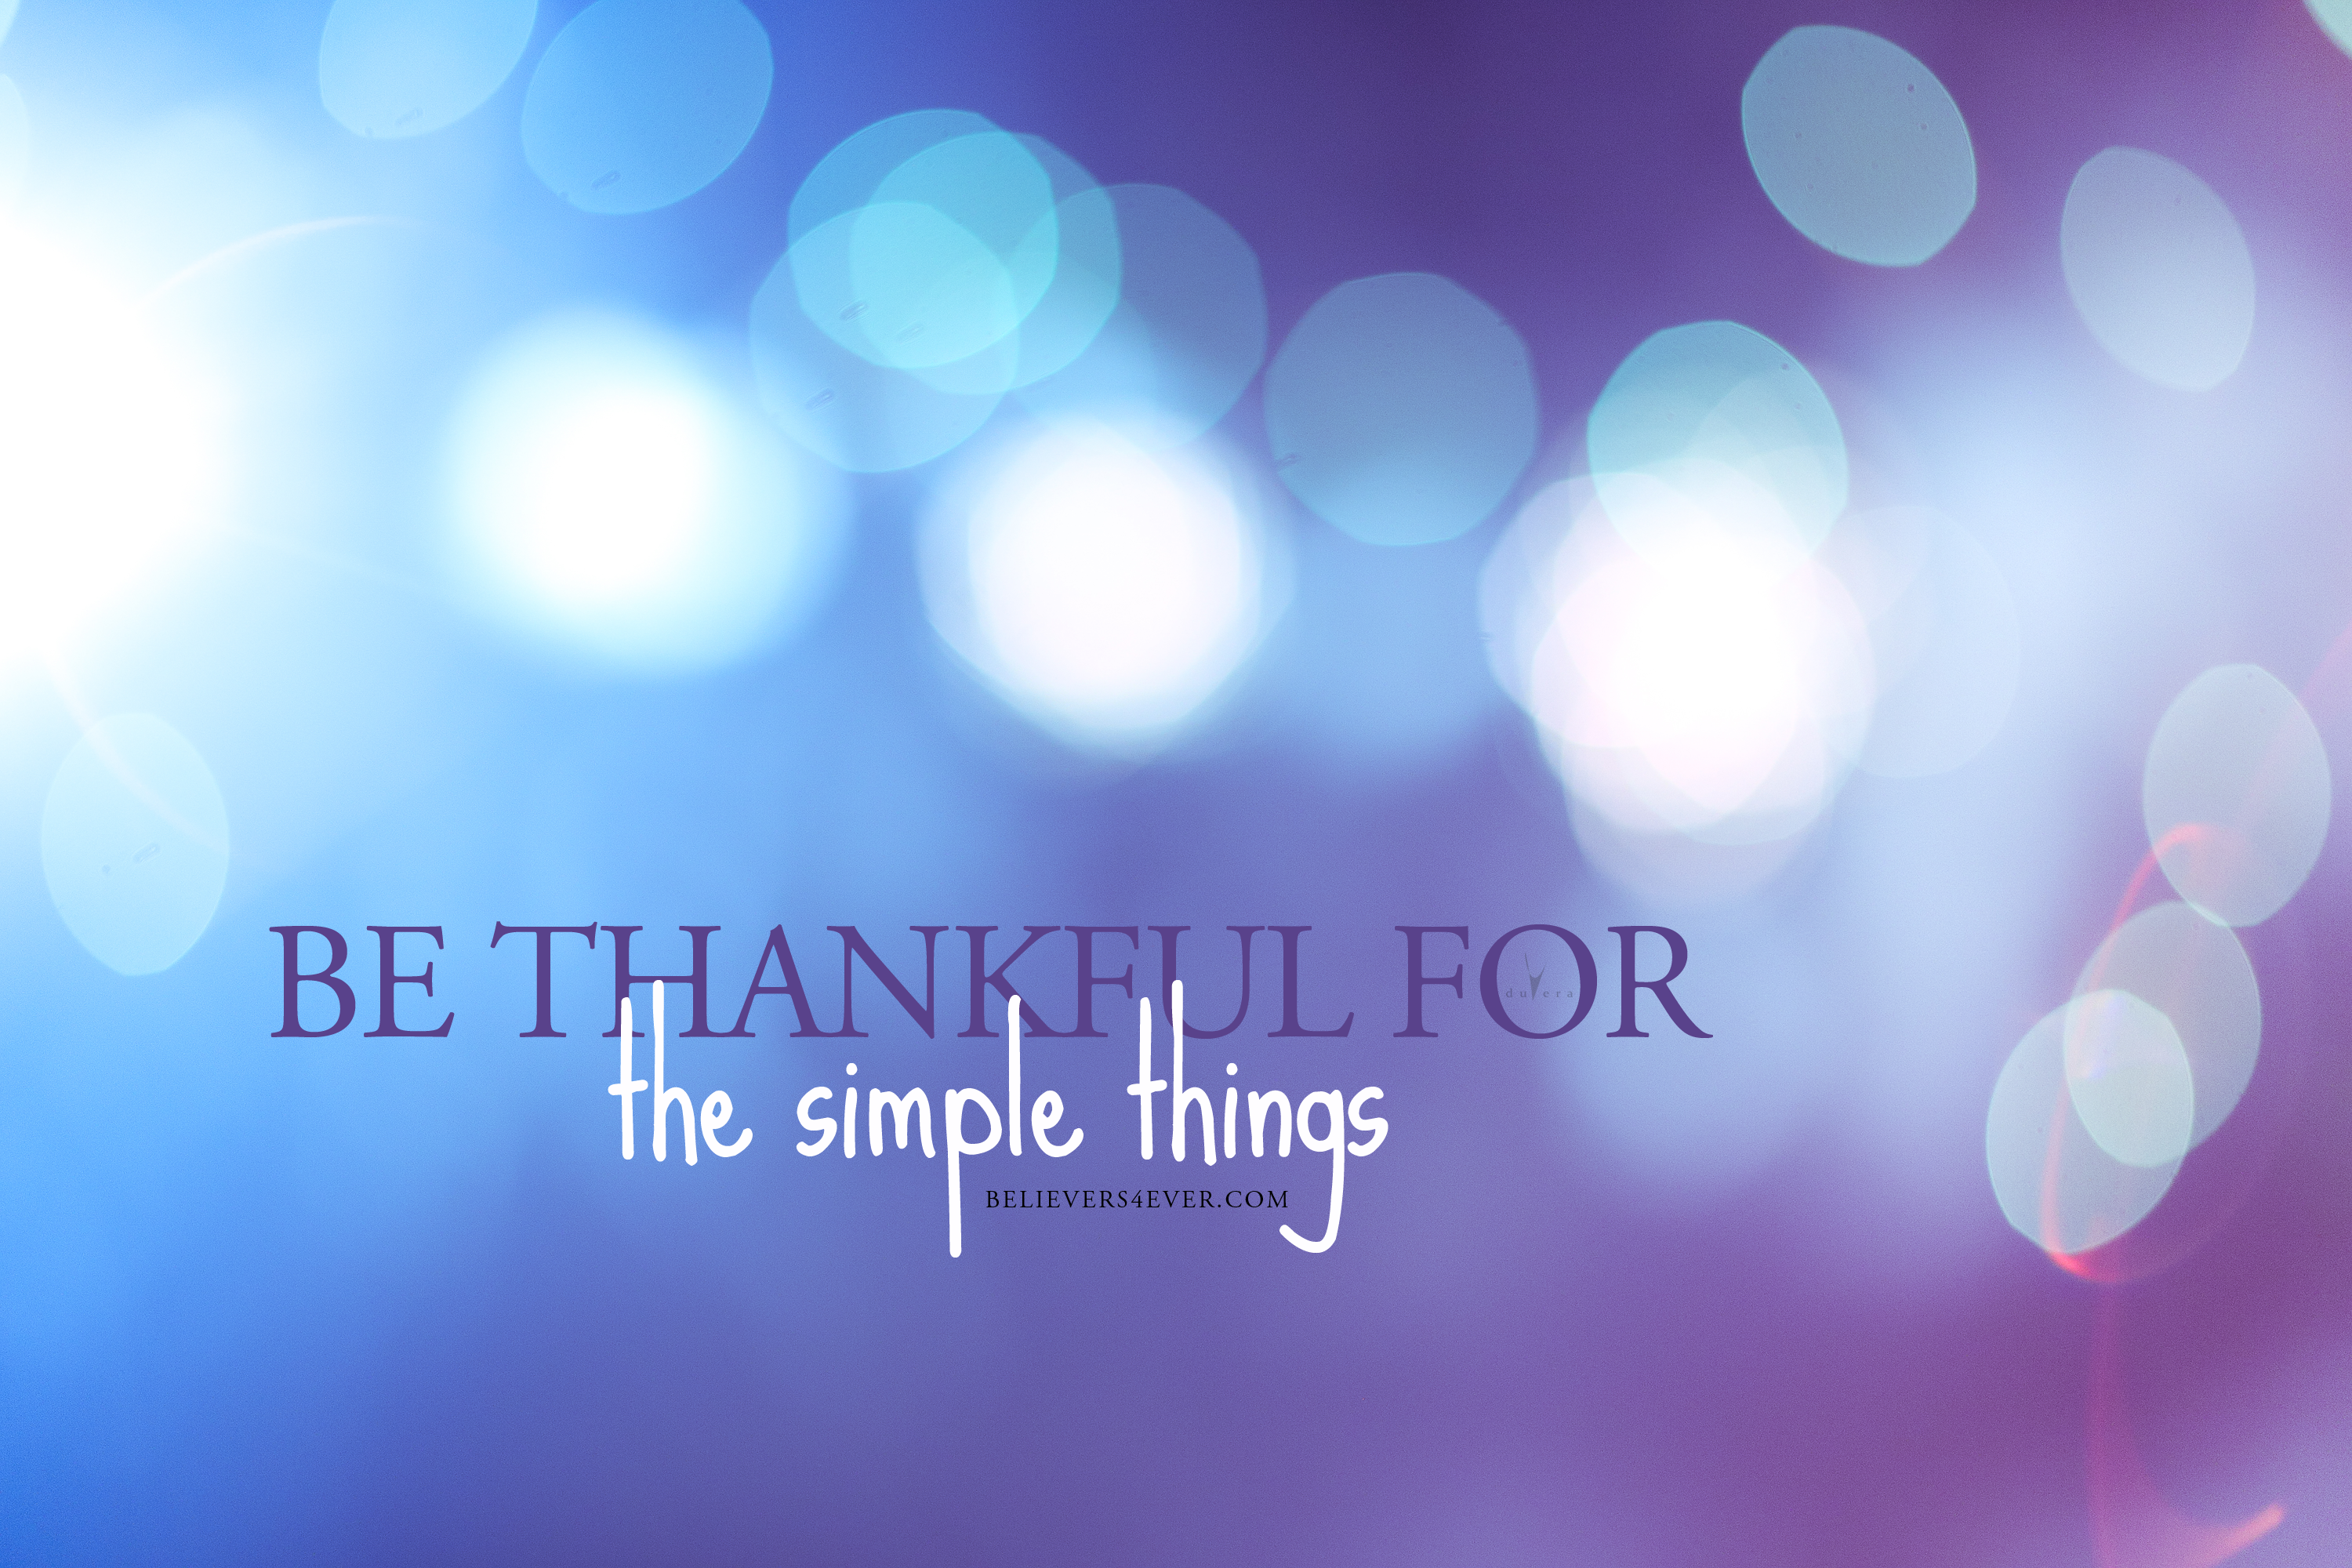 Be thankful for the simple things